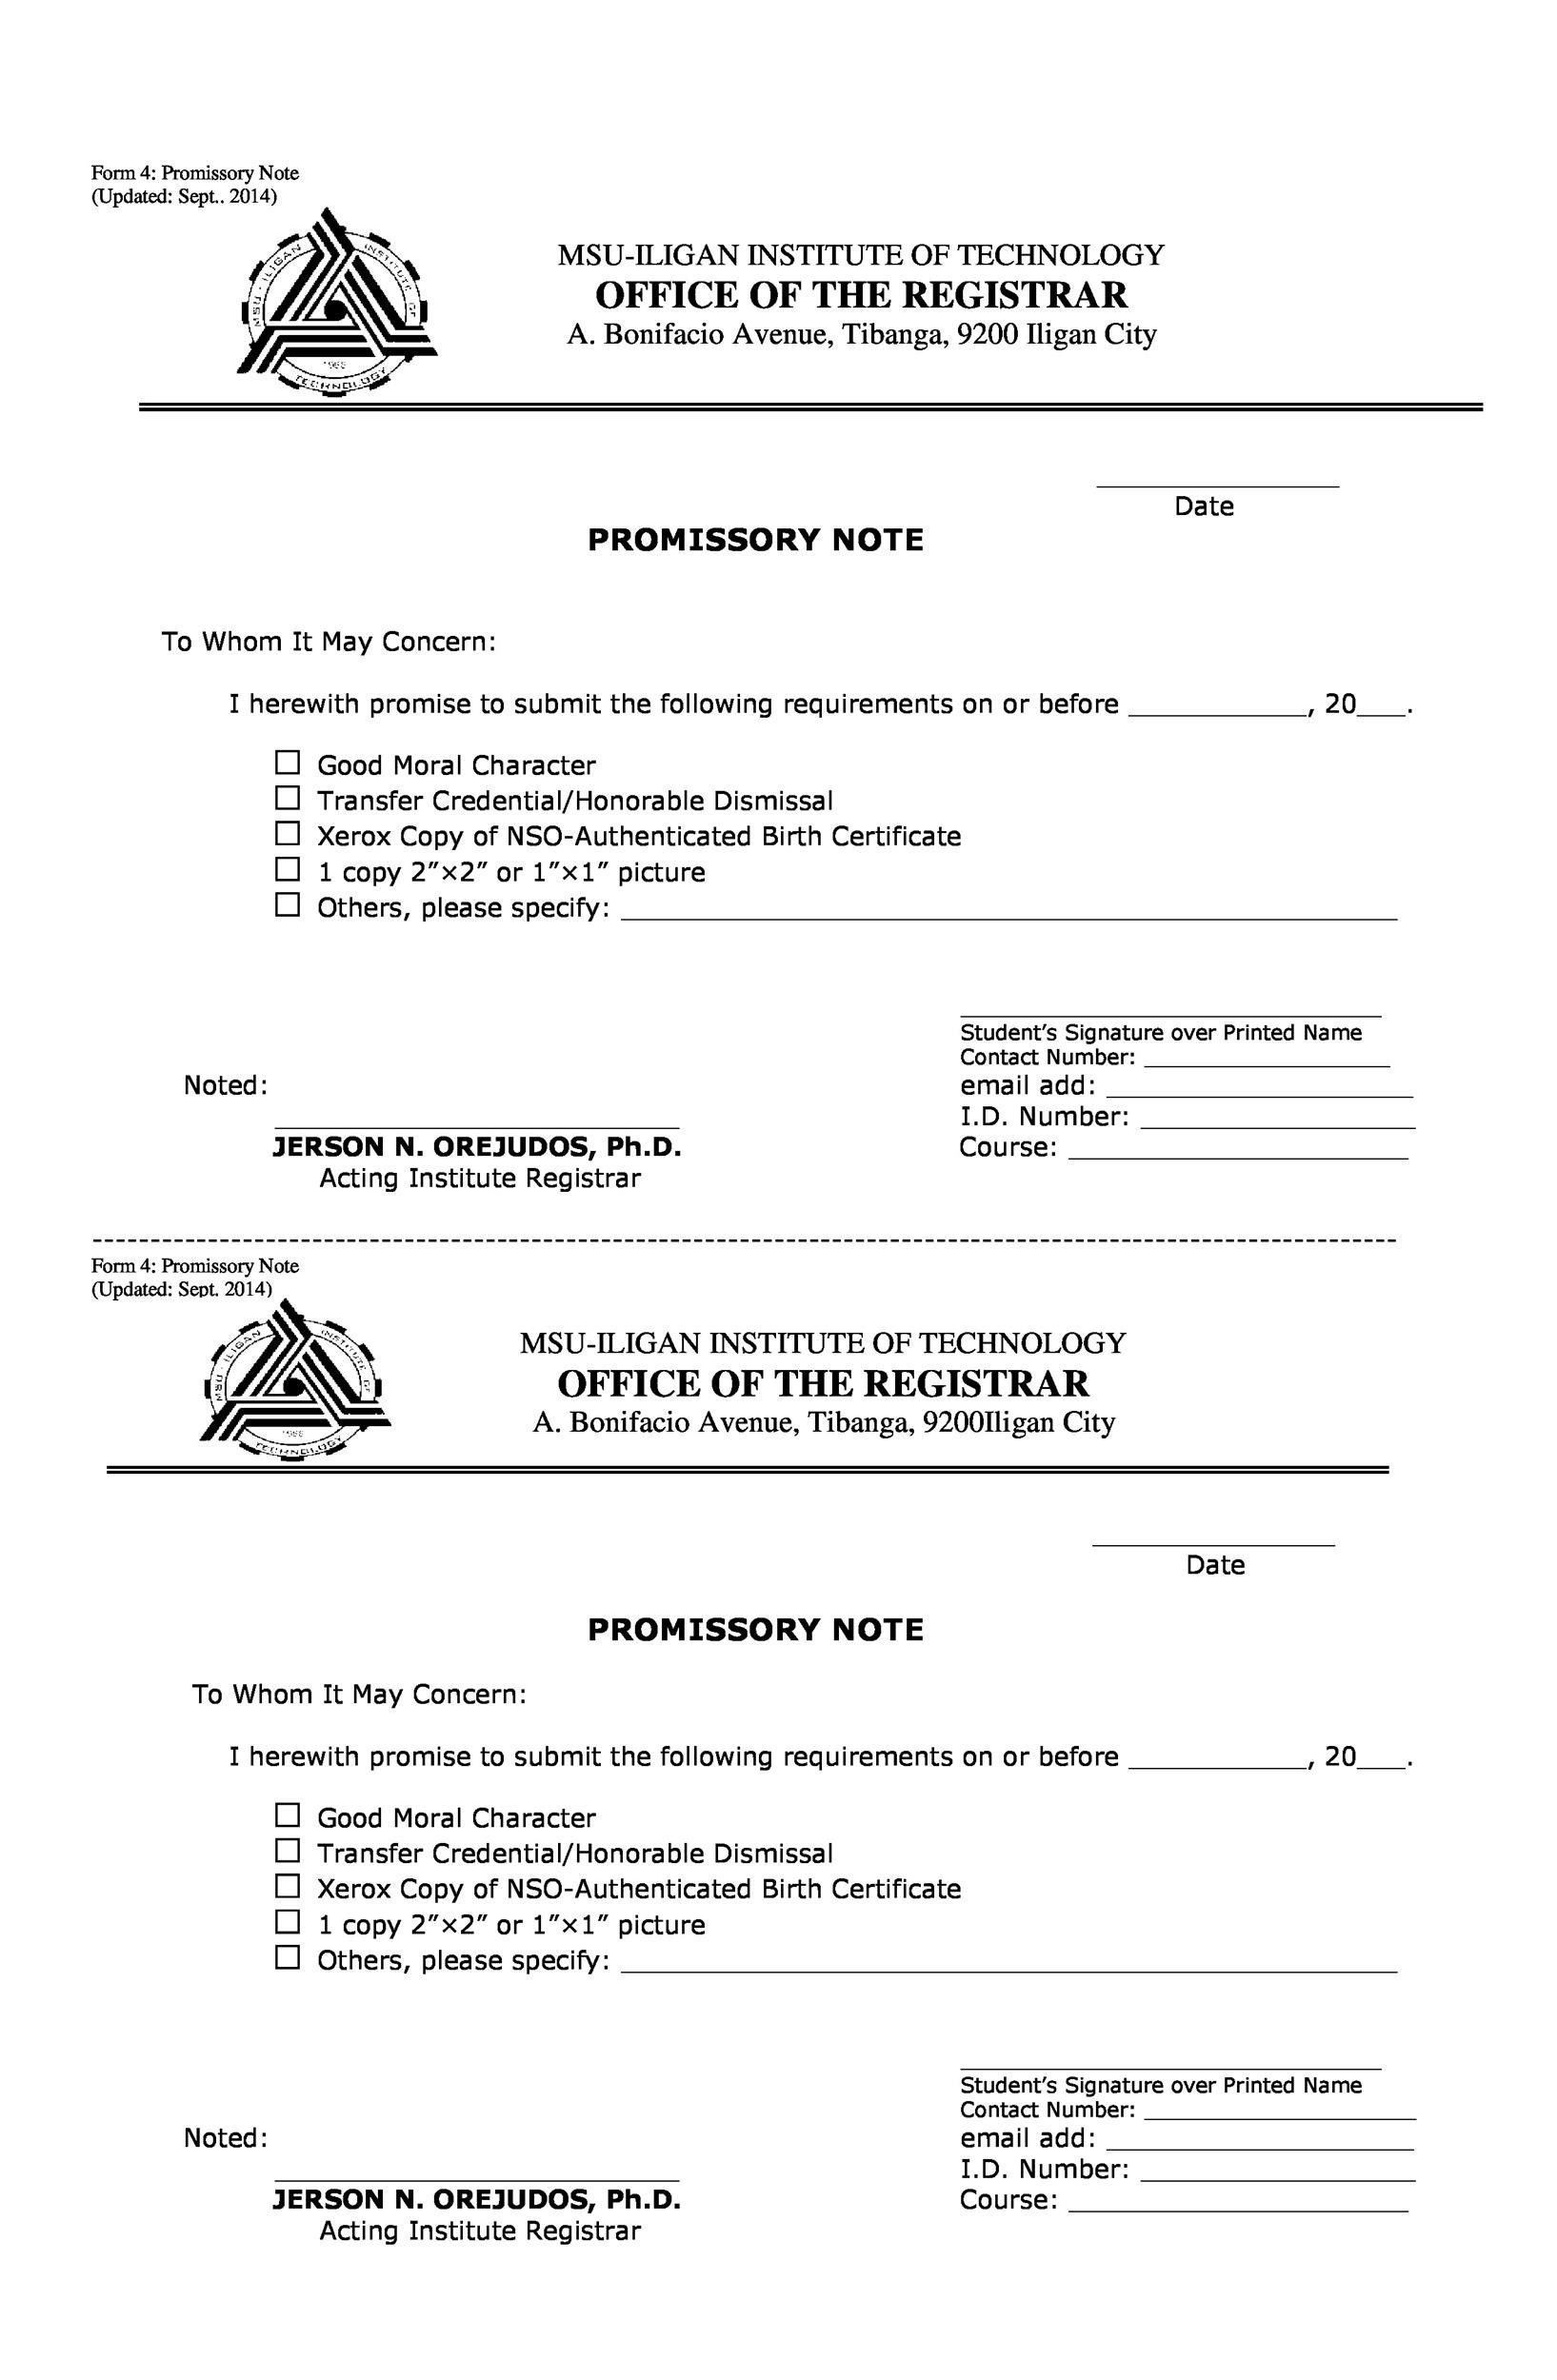 Attractive Printable Promissory Note Template 09  Promisary Note Template